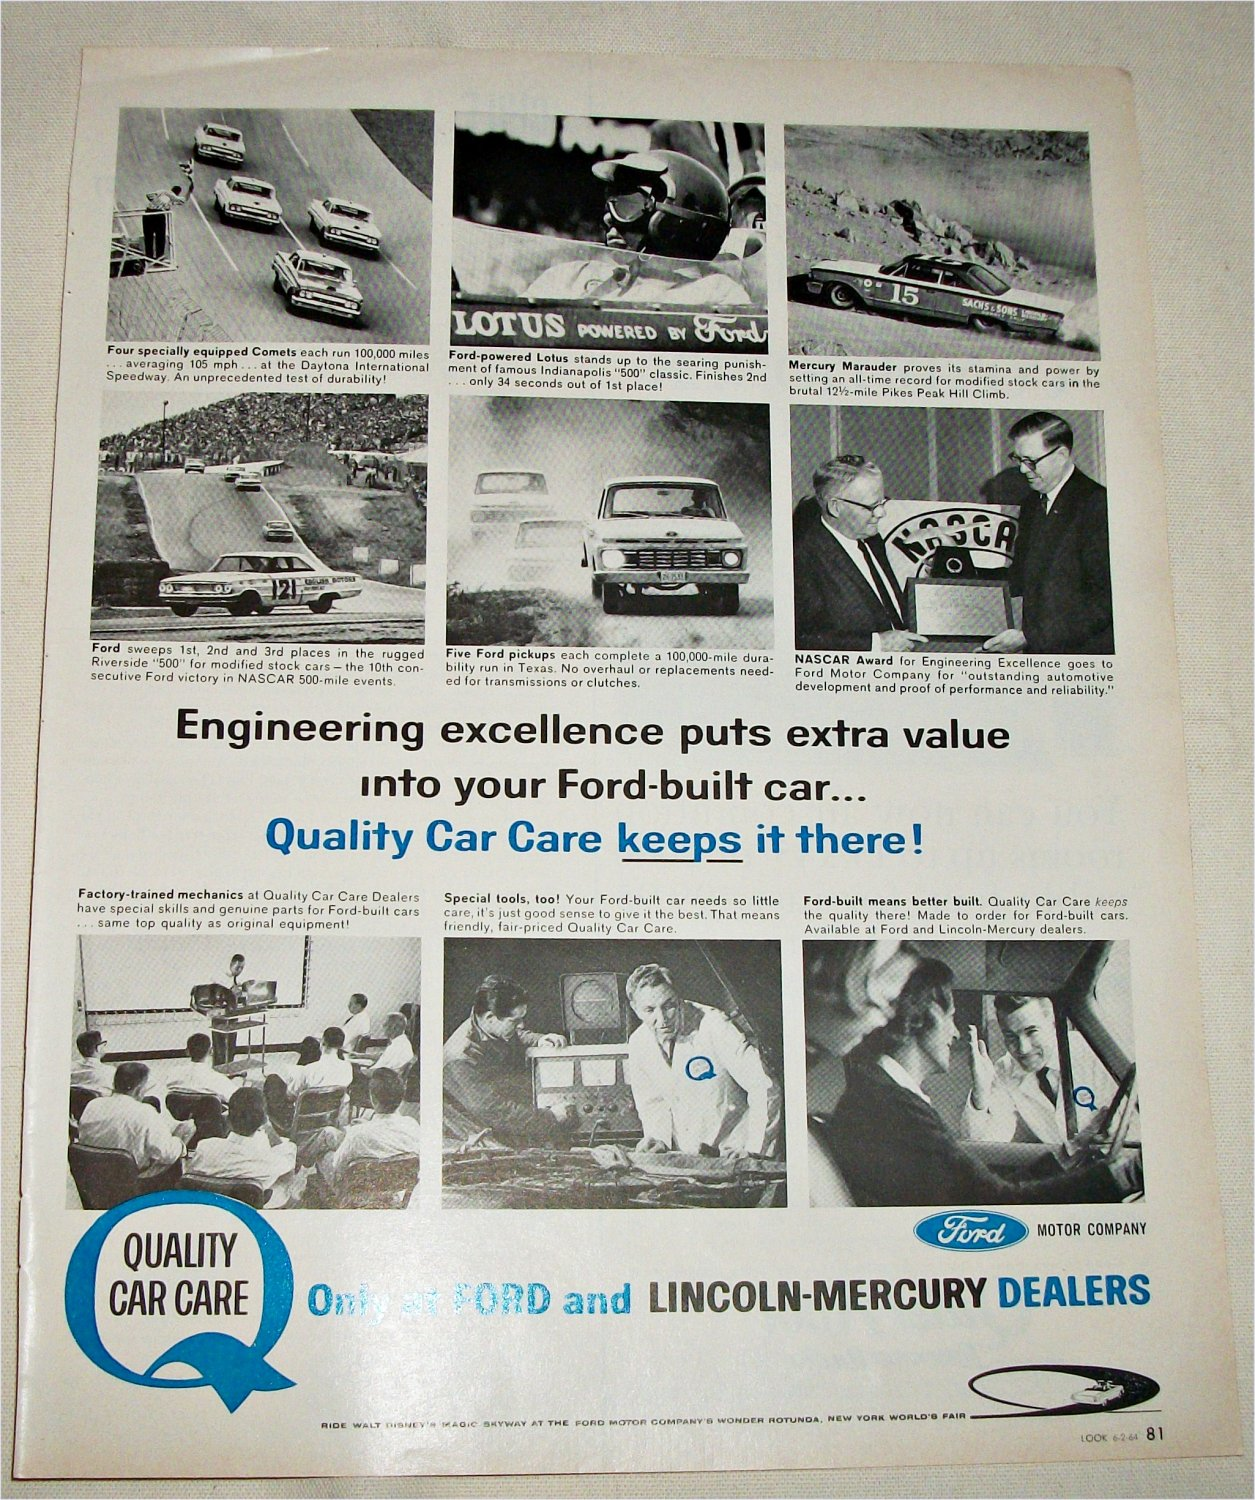 1964 Ford Quality Car Care ad